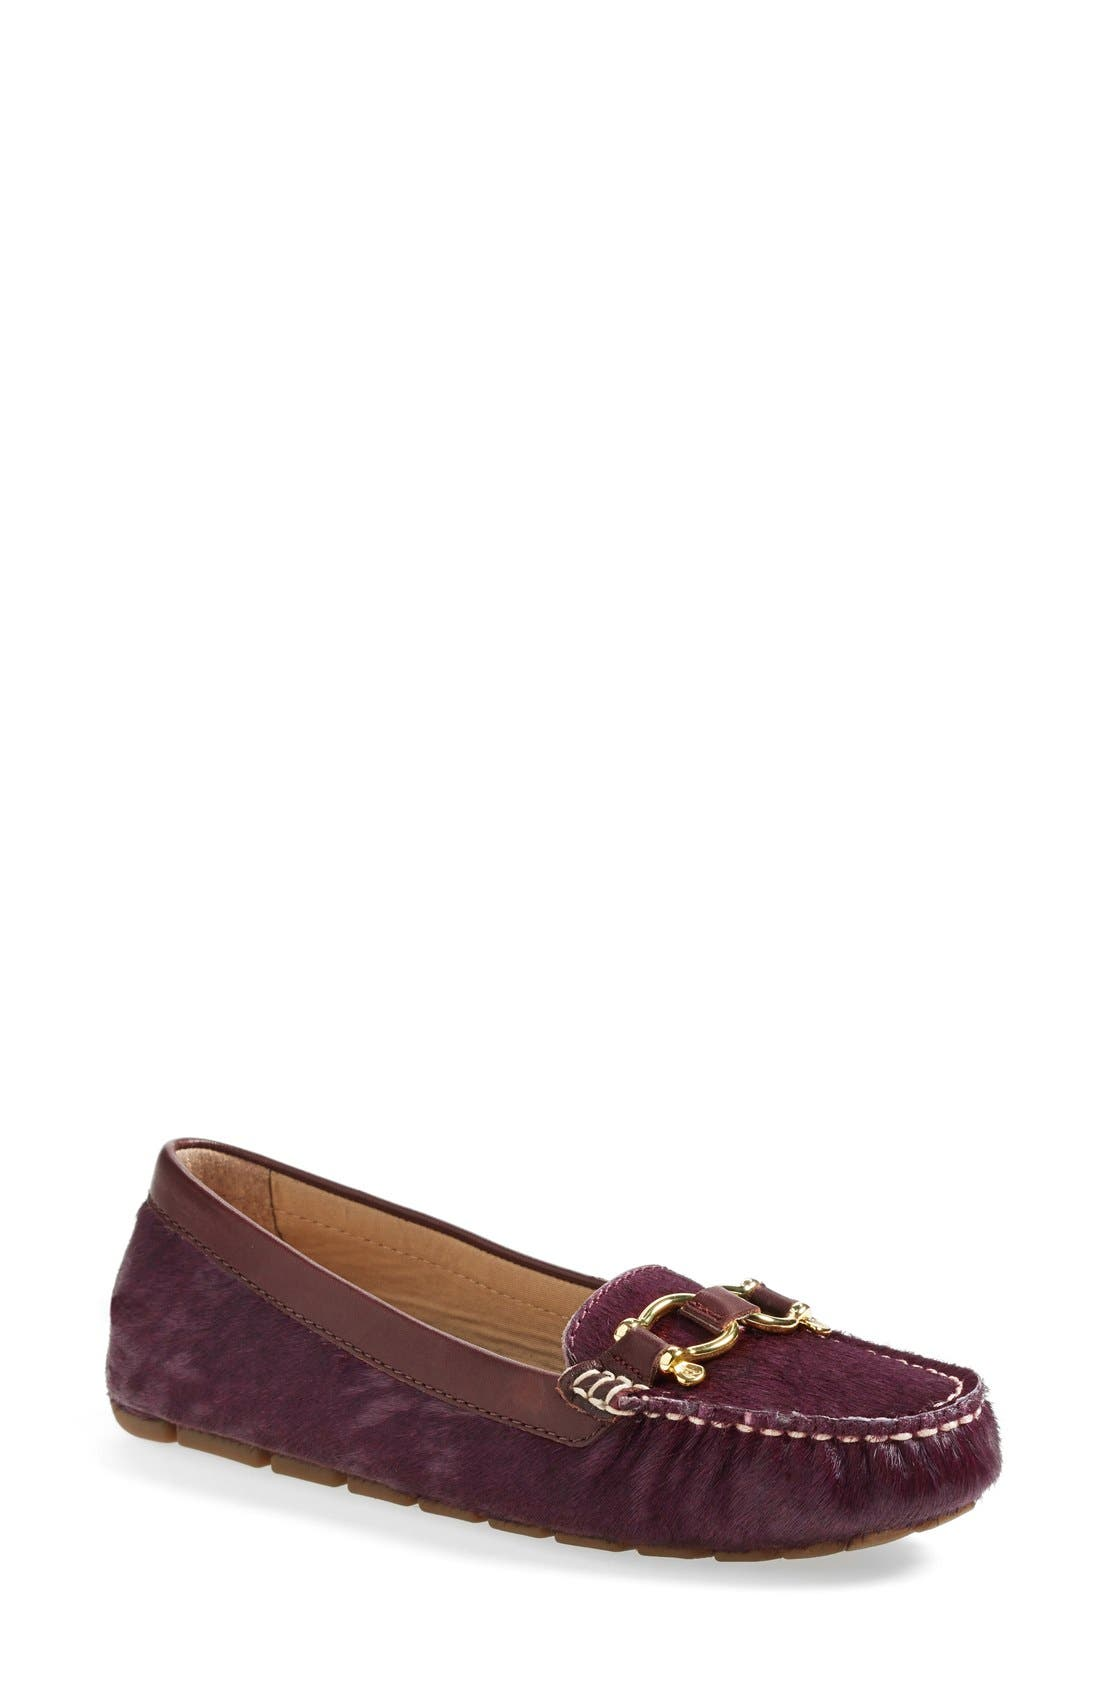 Alternate Image 1 Selected - Sperry Top-Sider® 'Jenna' Metallic Leather Loafer (Online Only) (Women)